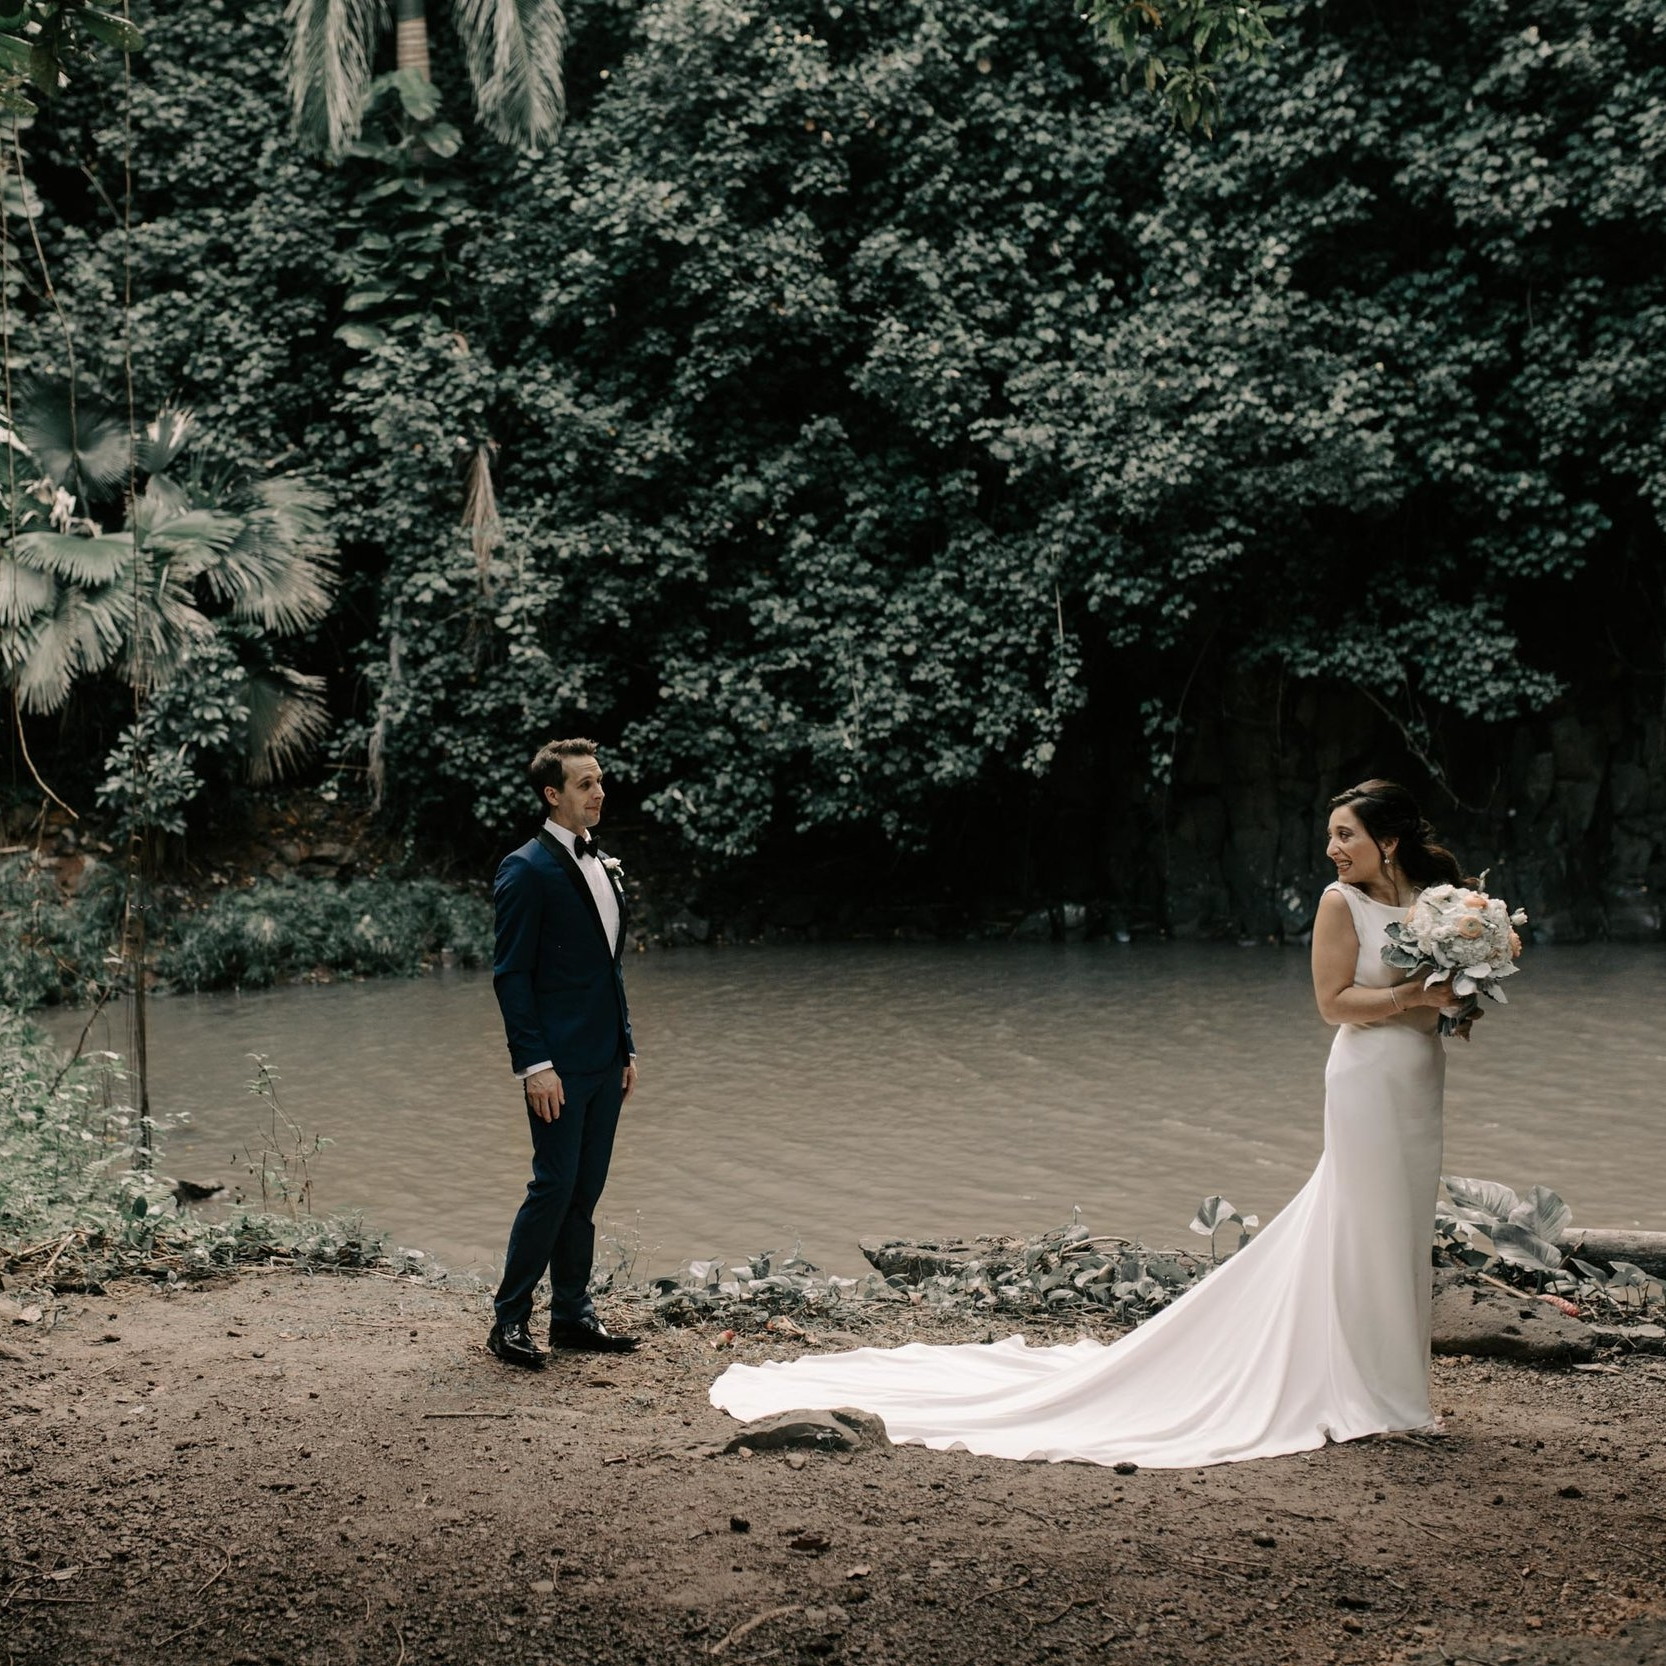 Waihulili Falls Kauai Elopement by Hawaii Wedding Photographer Desiree Leilani